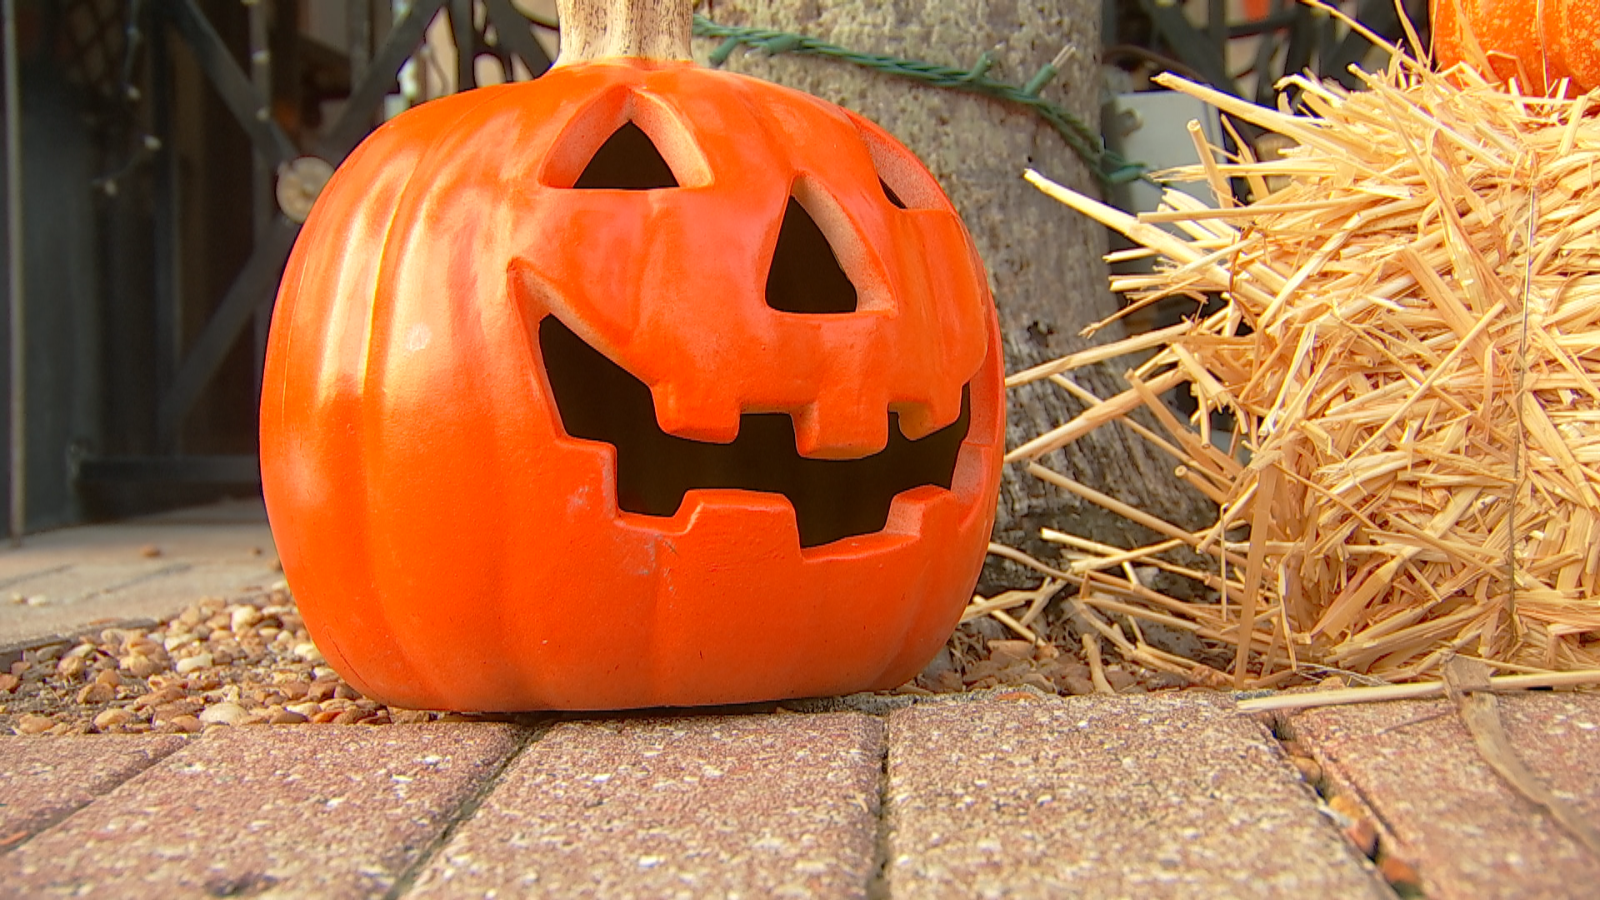 A Halloween pumpkin. Photo via WINK News.